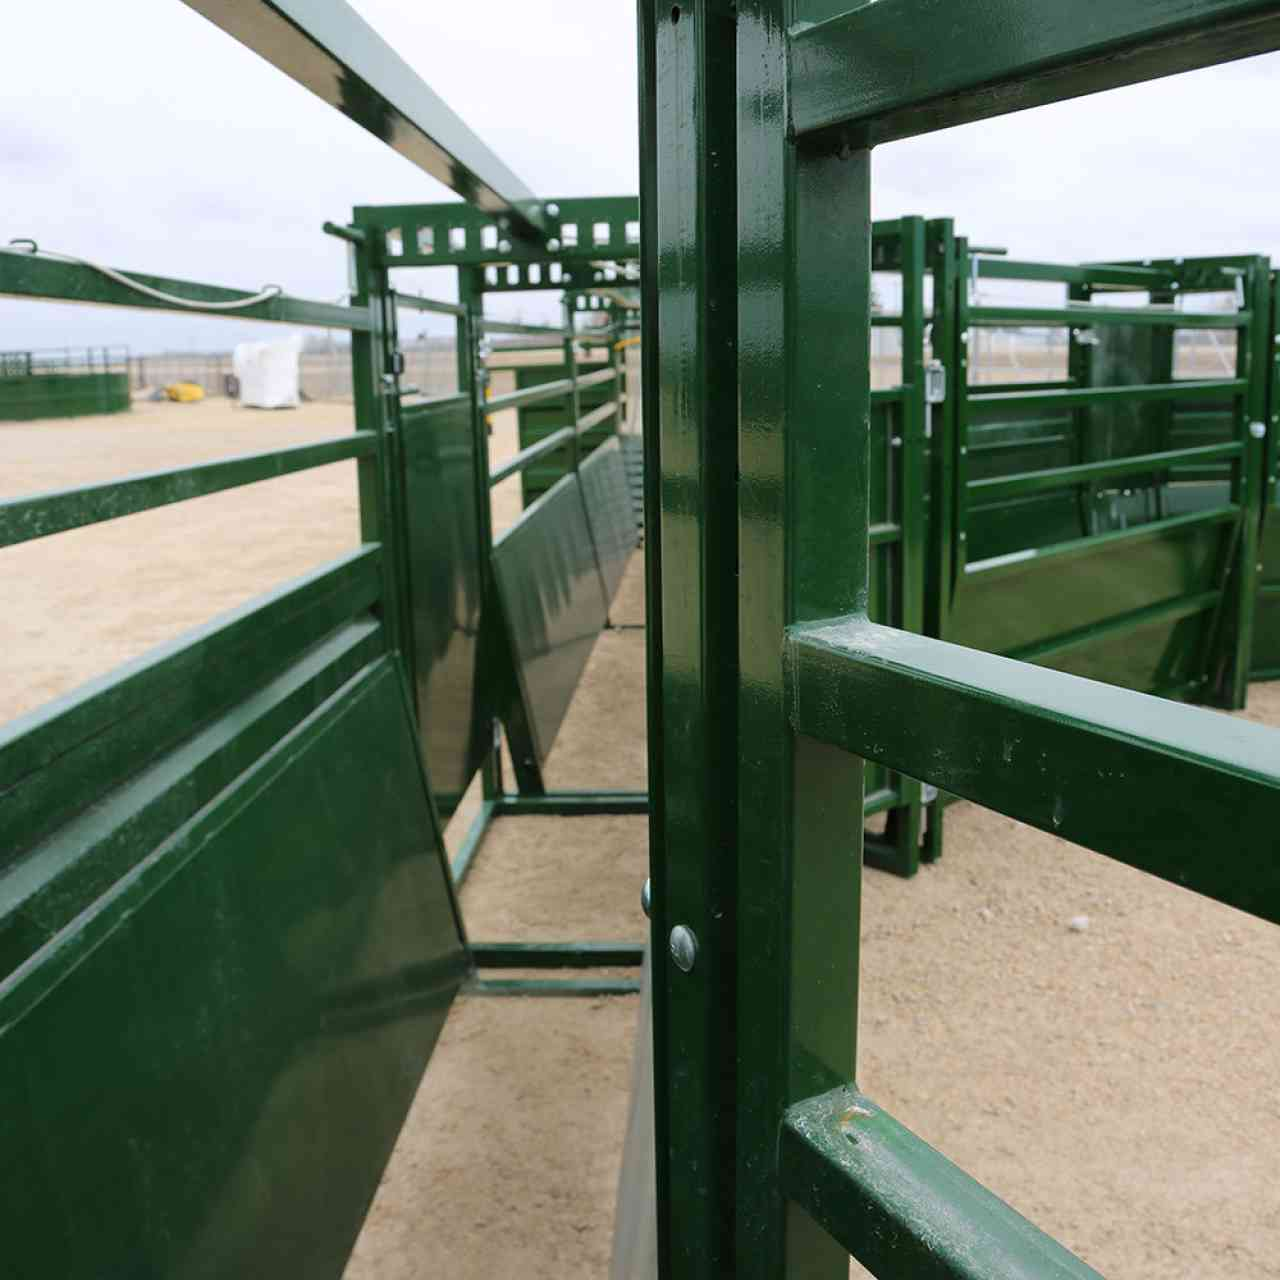 Inside view of adjustable cattle alley from inside cattle squeeze chute